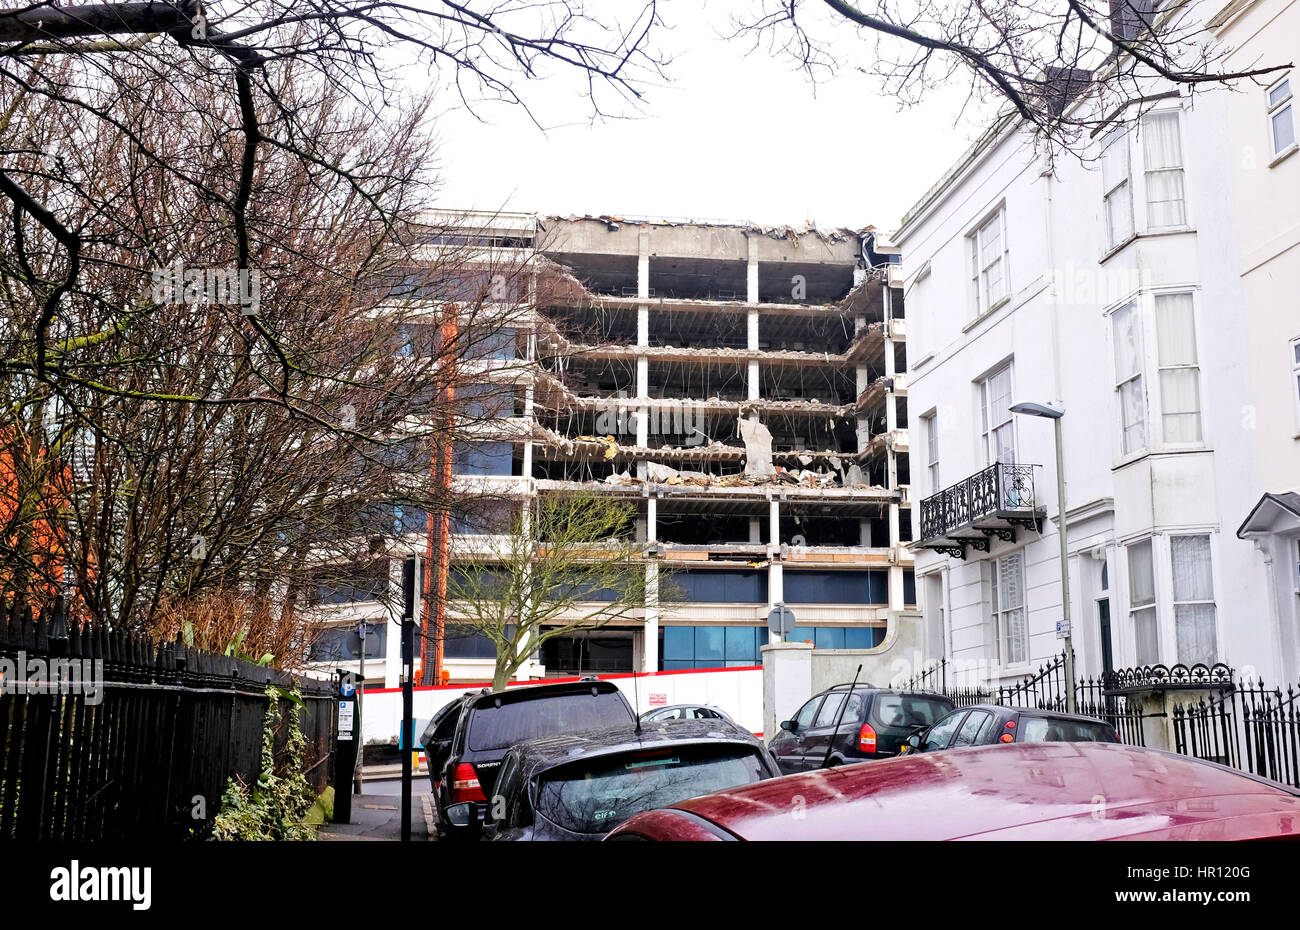 Brighton, Sussex, UK. 26th Feb, 2017. Demolition work taking place on the old American Express European headquarters - Stock Image